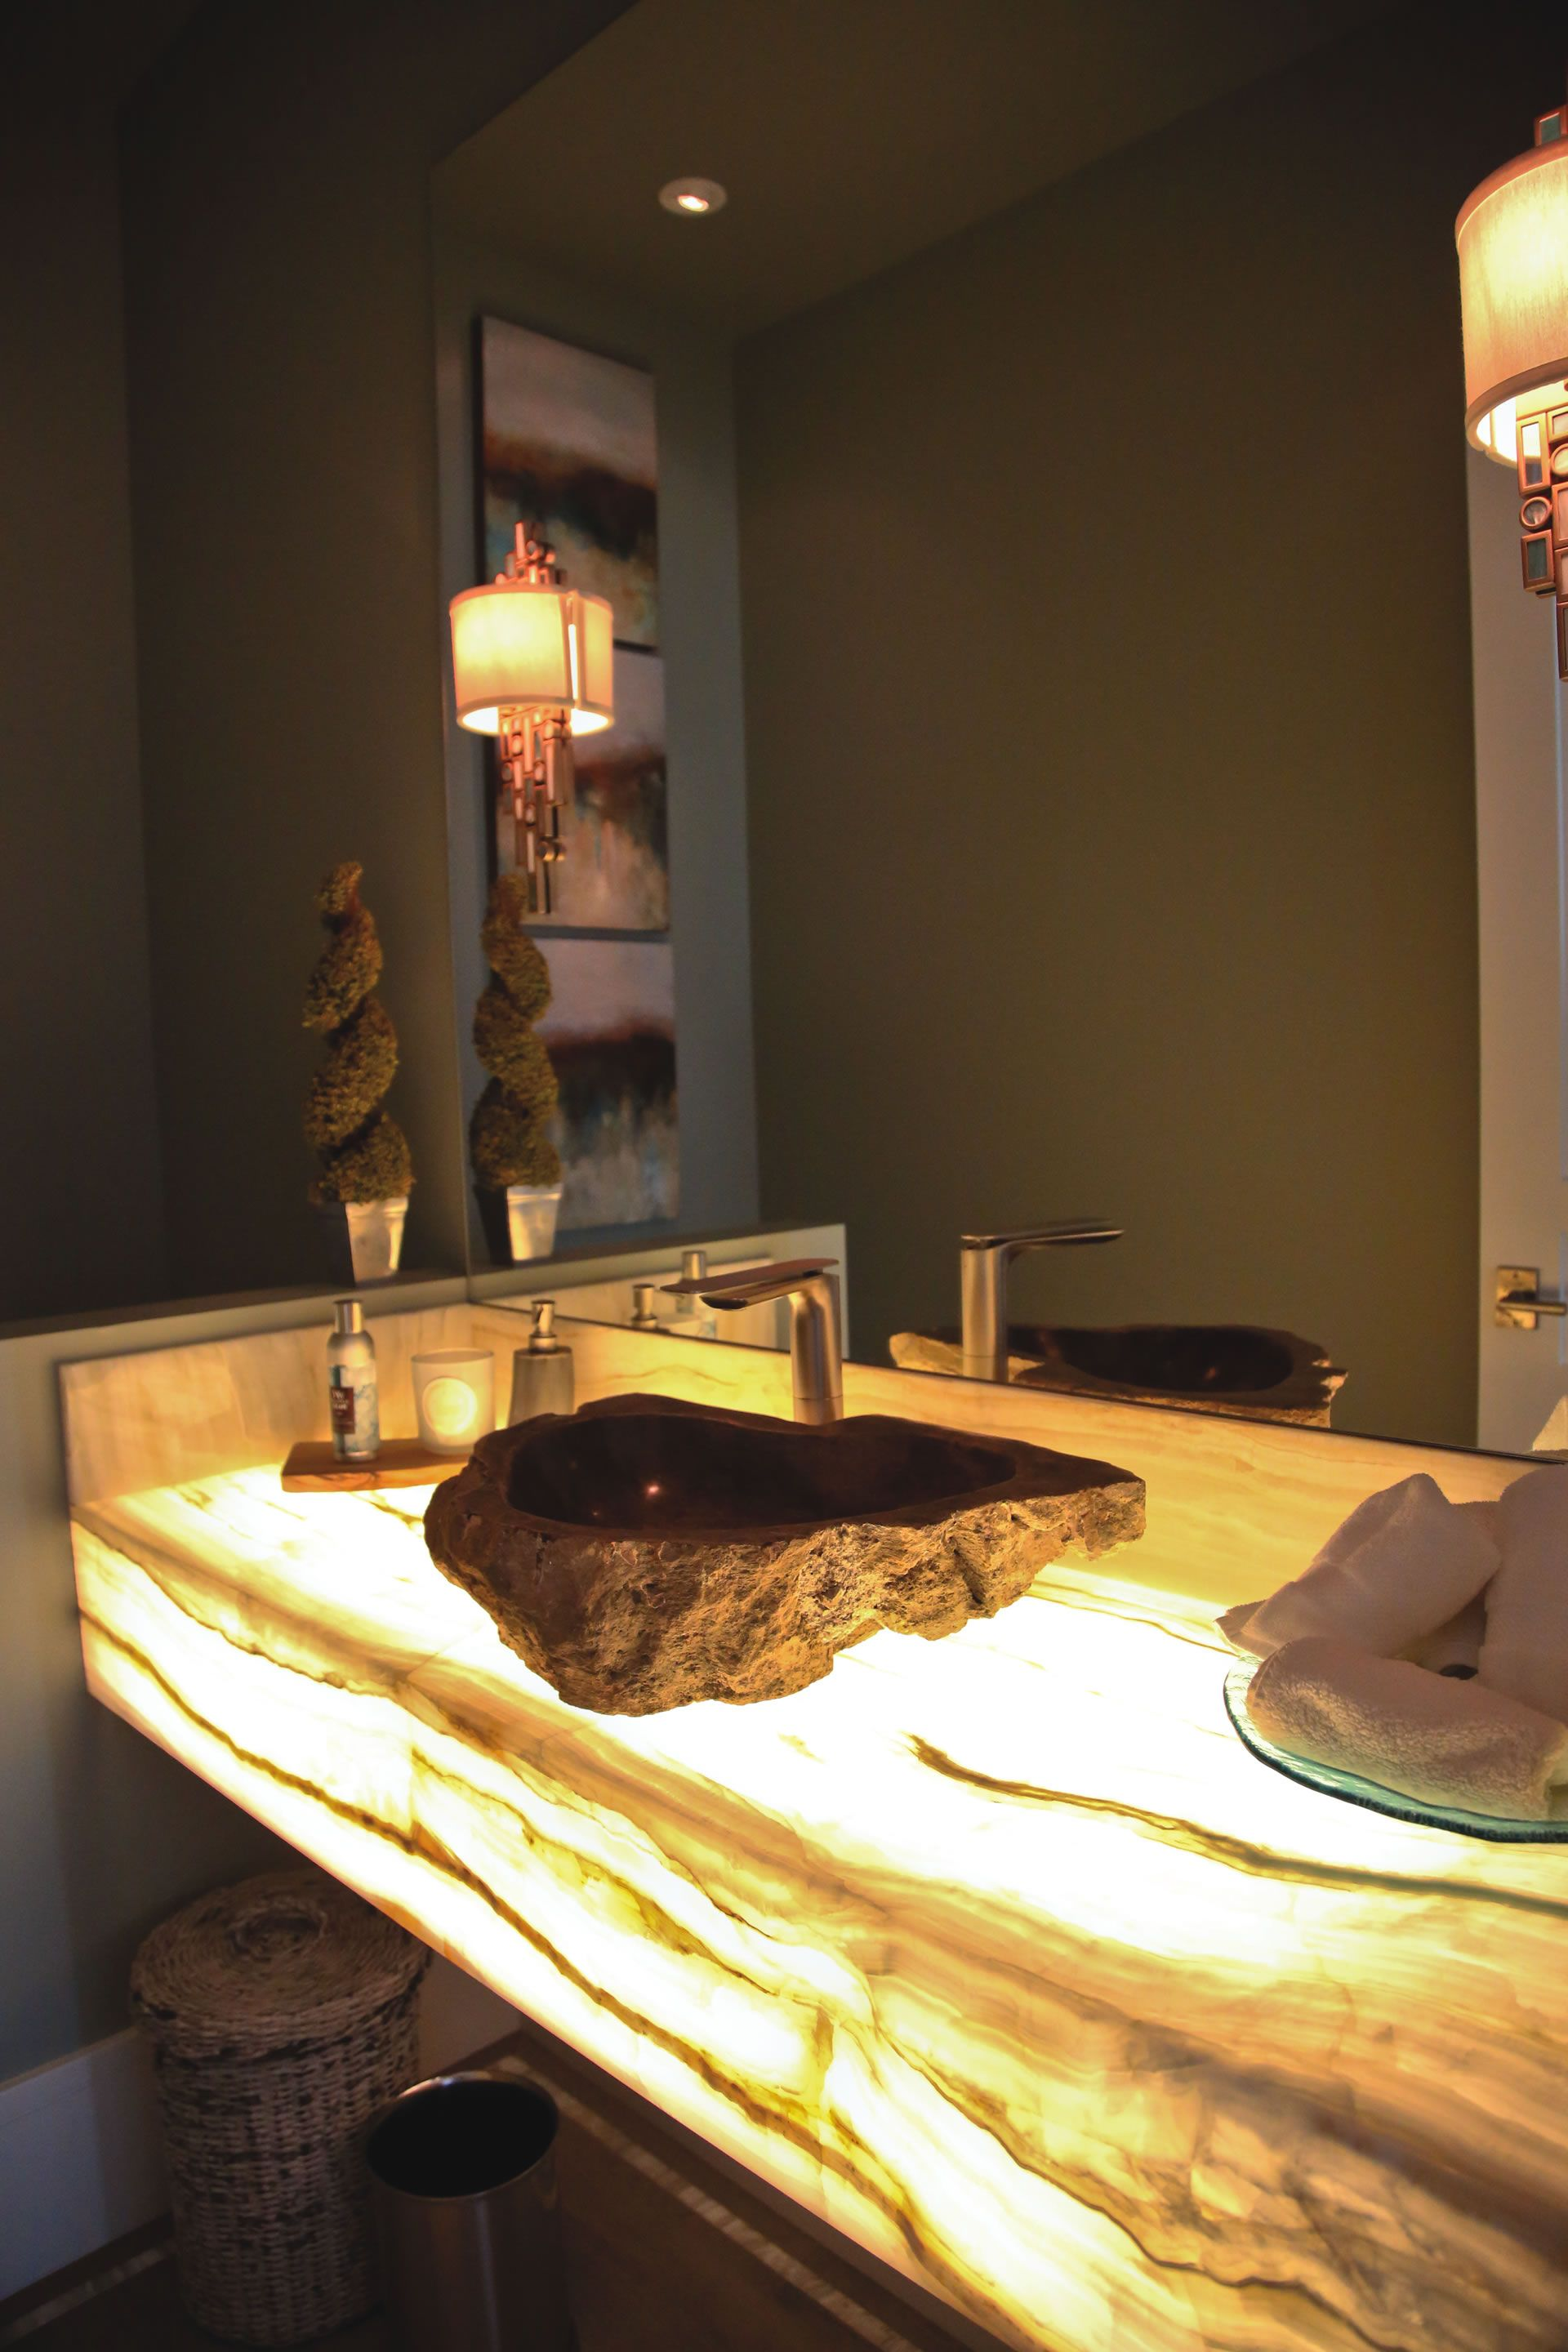 led light shines through a white onyx countertop, illuminating the